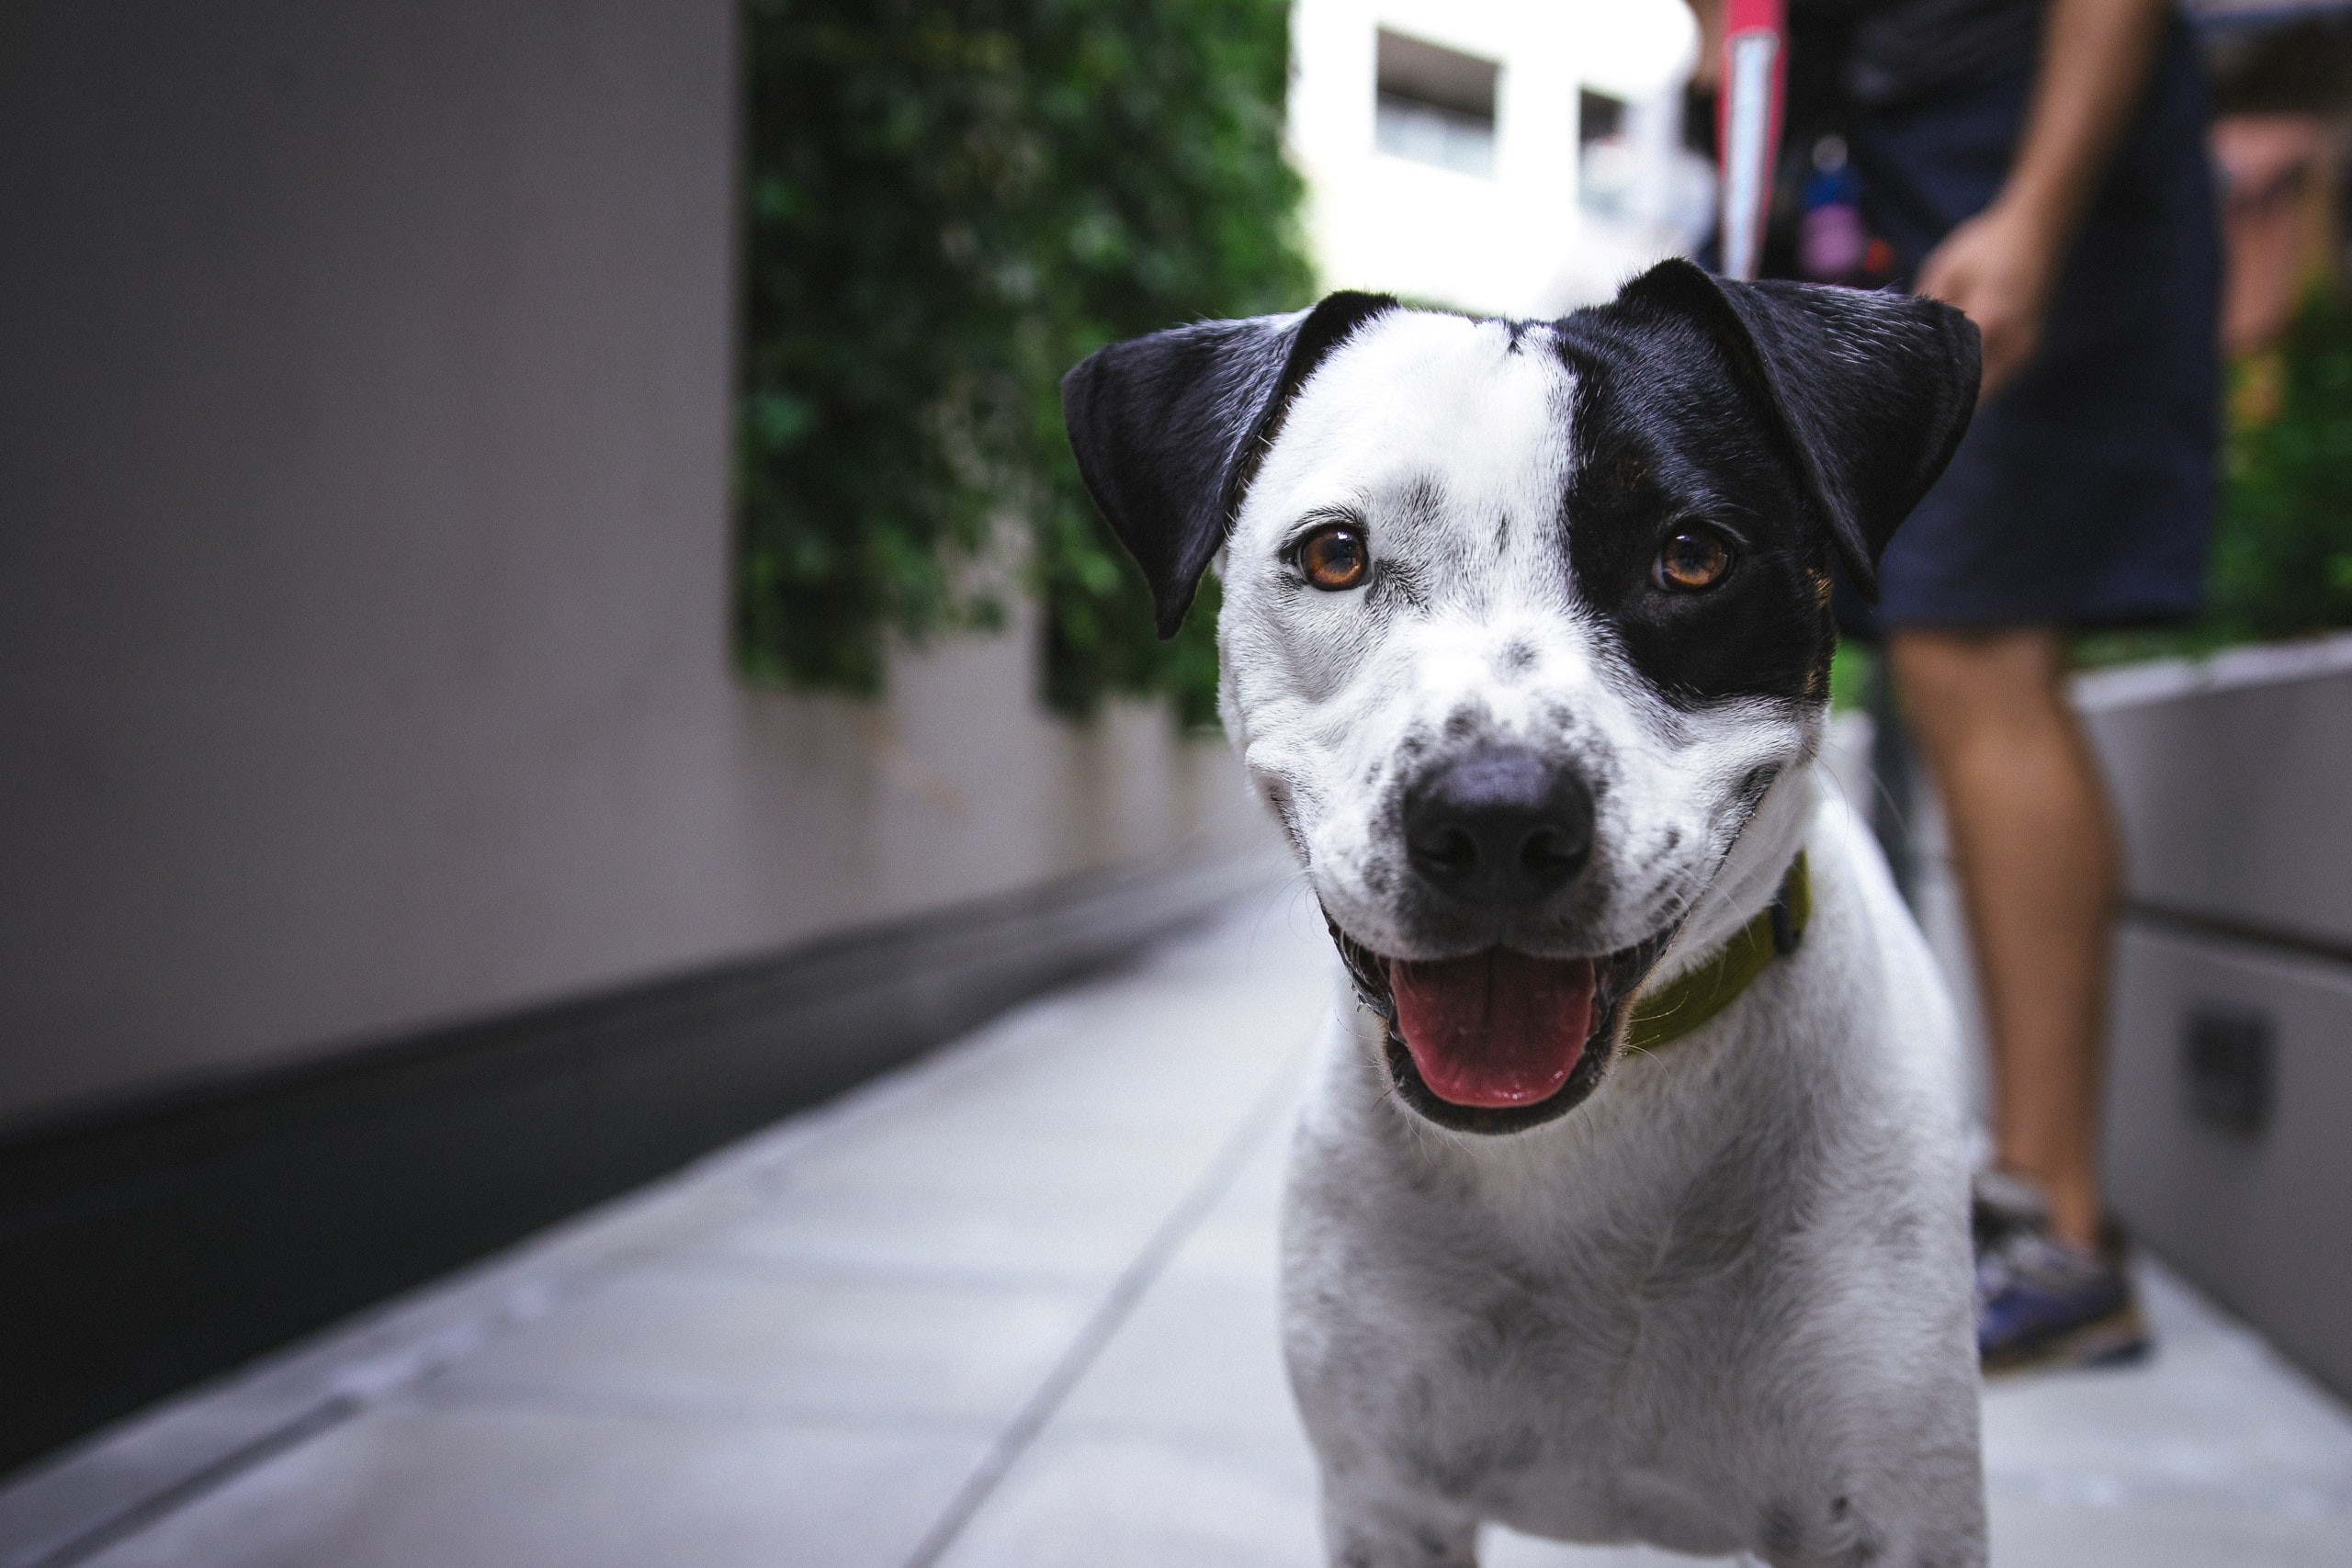 Is It Possible to Live with a Dog in an Apartment?